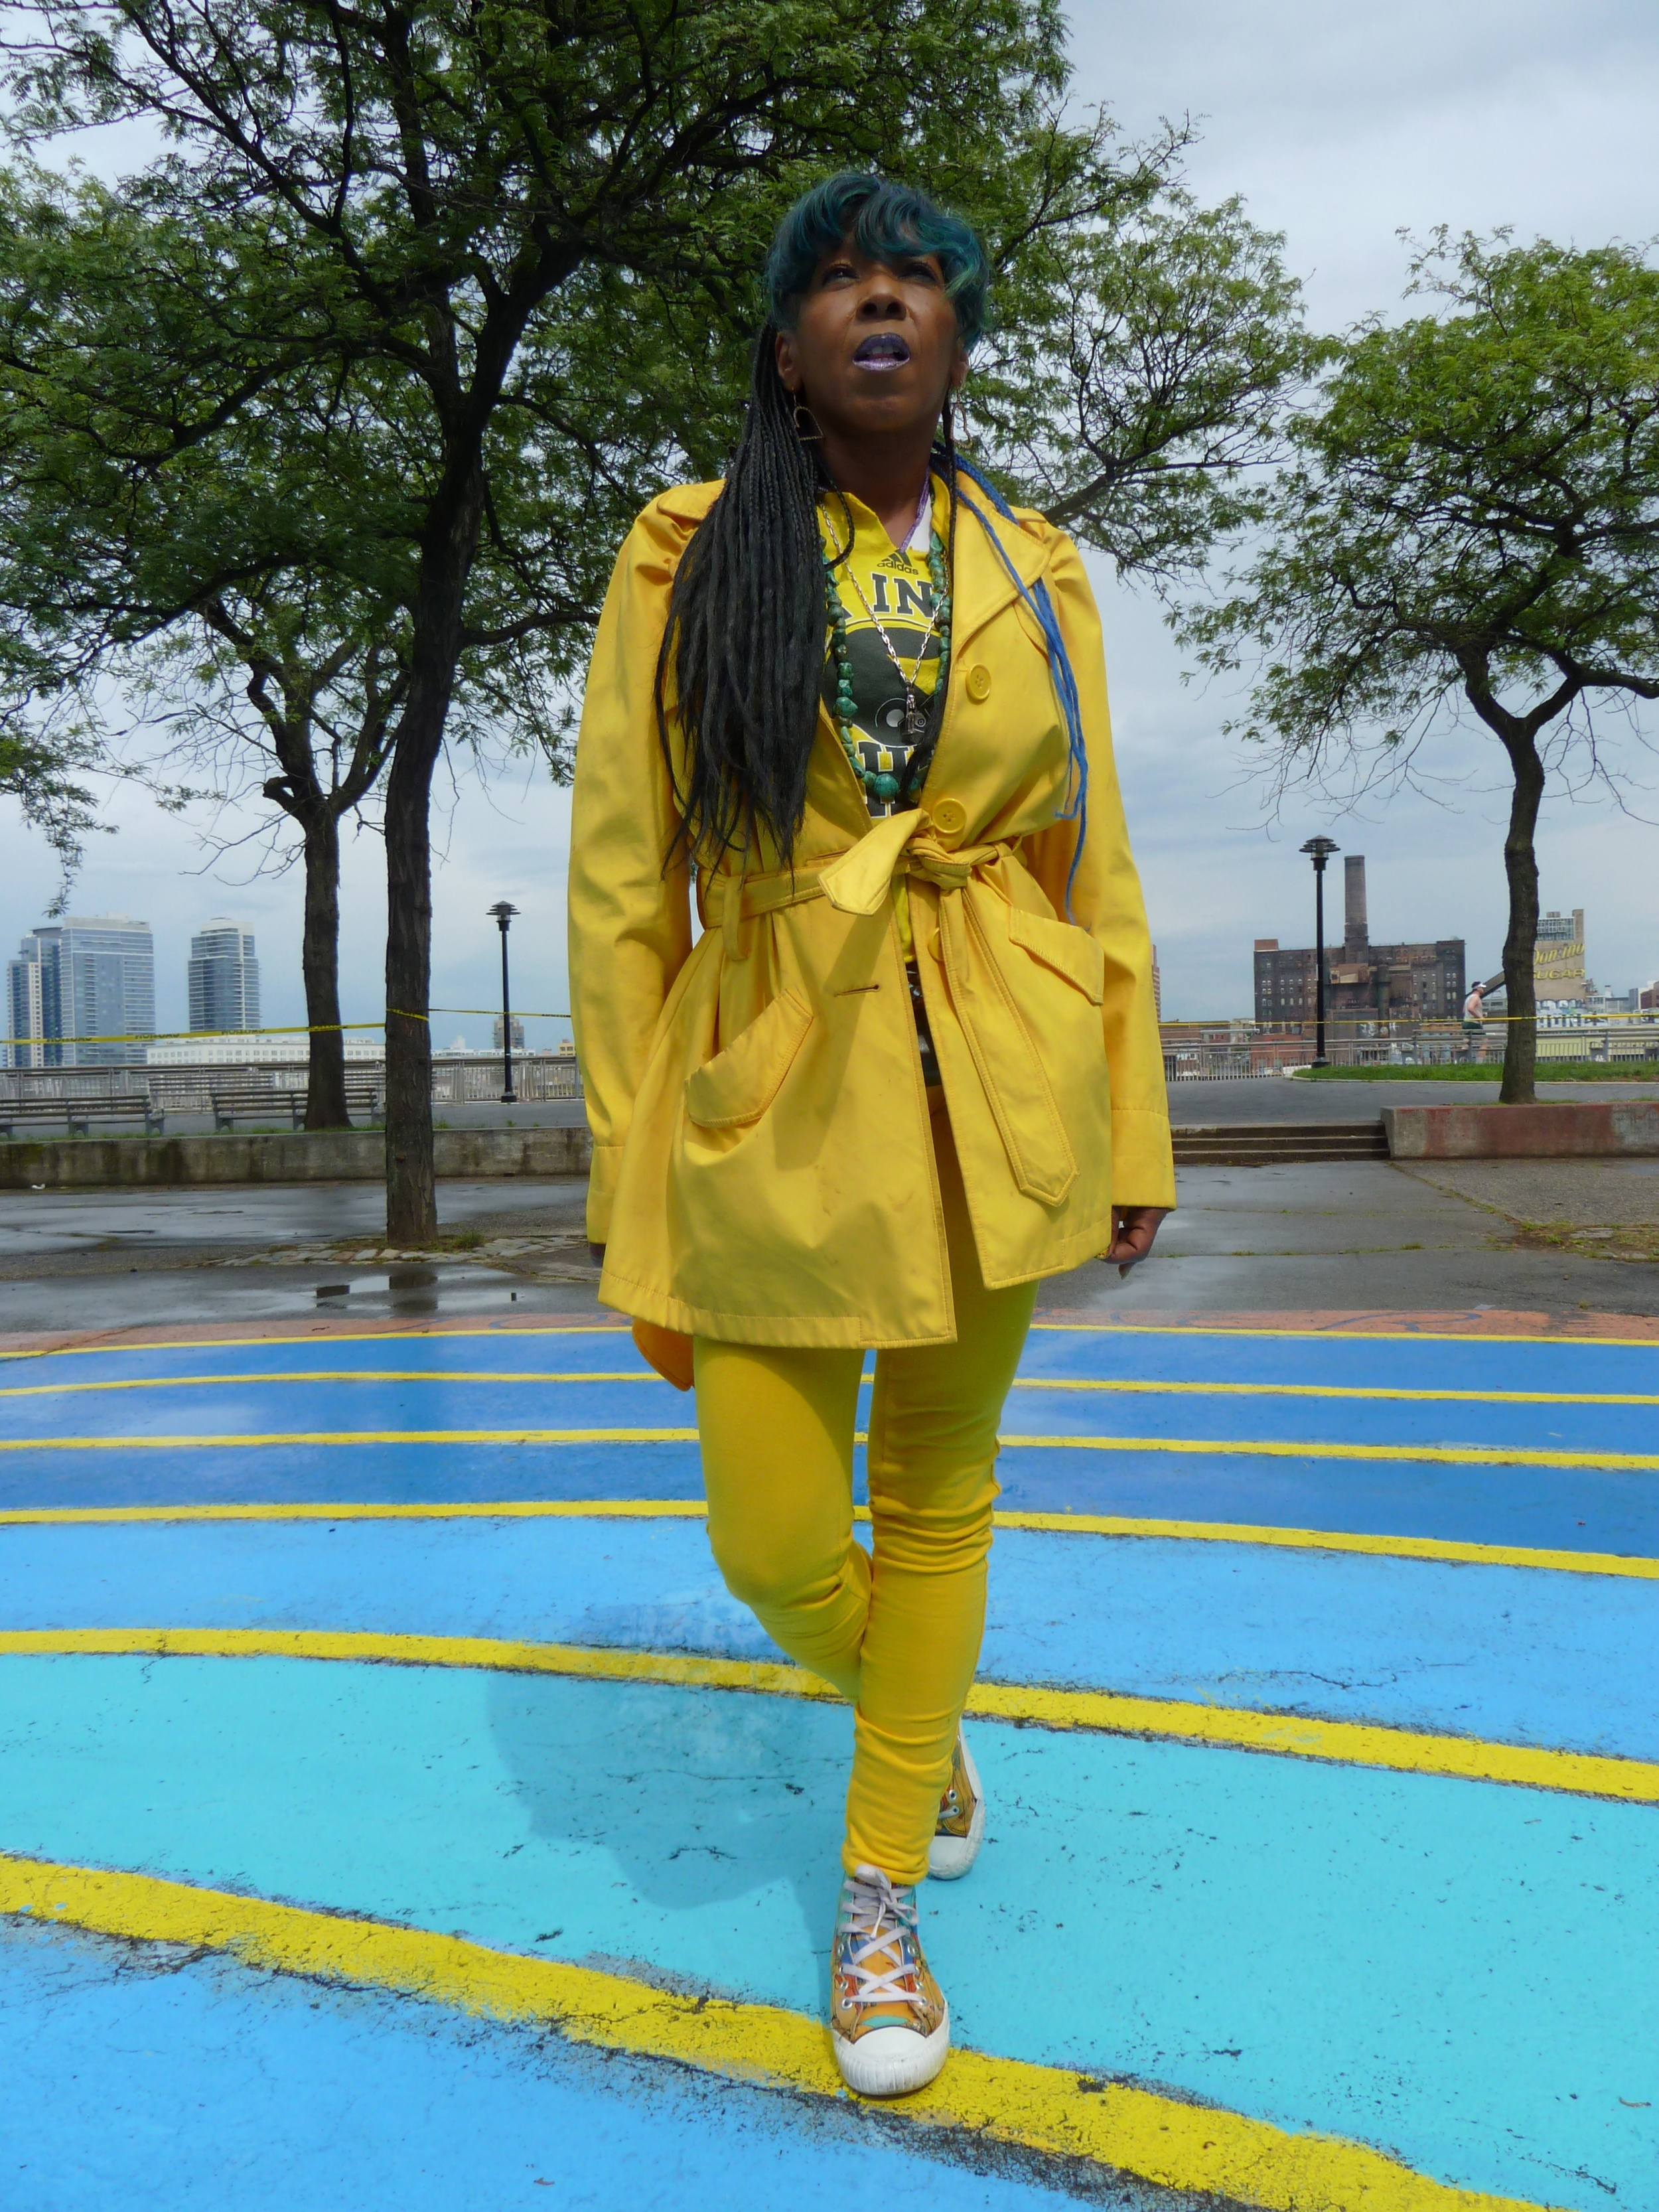 Tanzania on the East River Reflections Labyrinth.